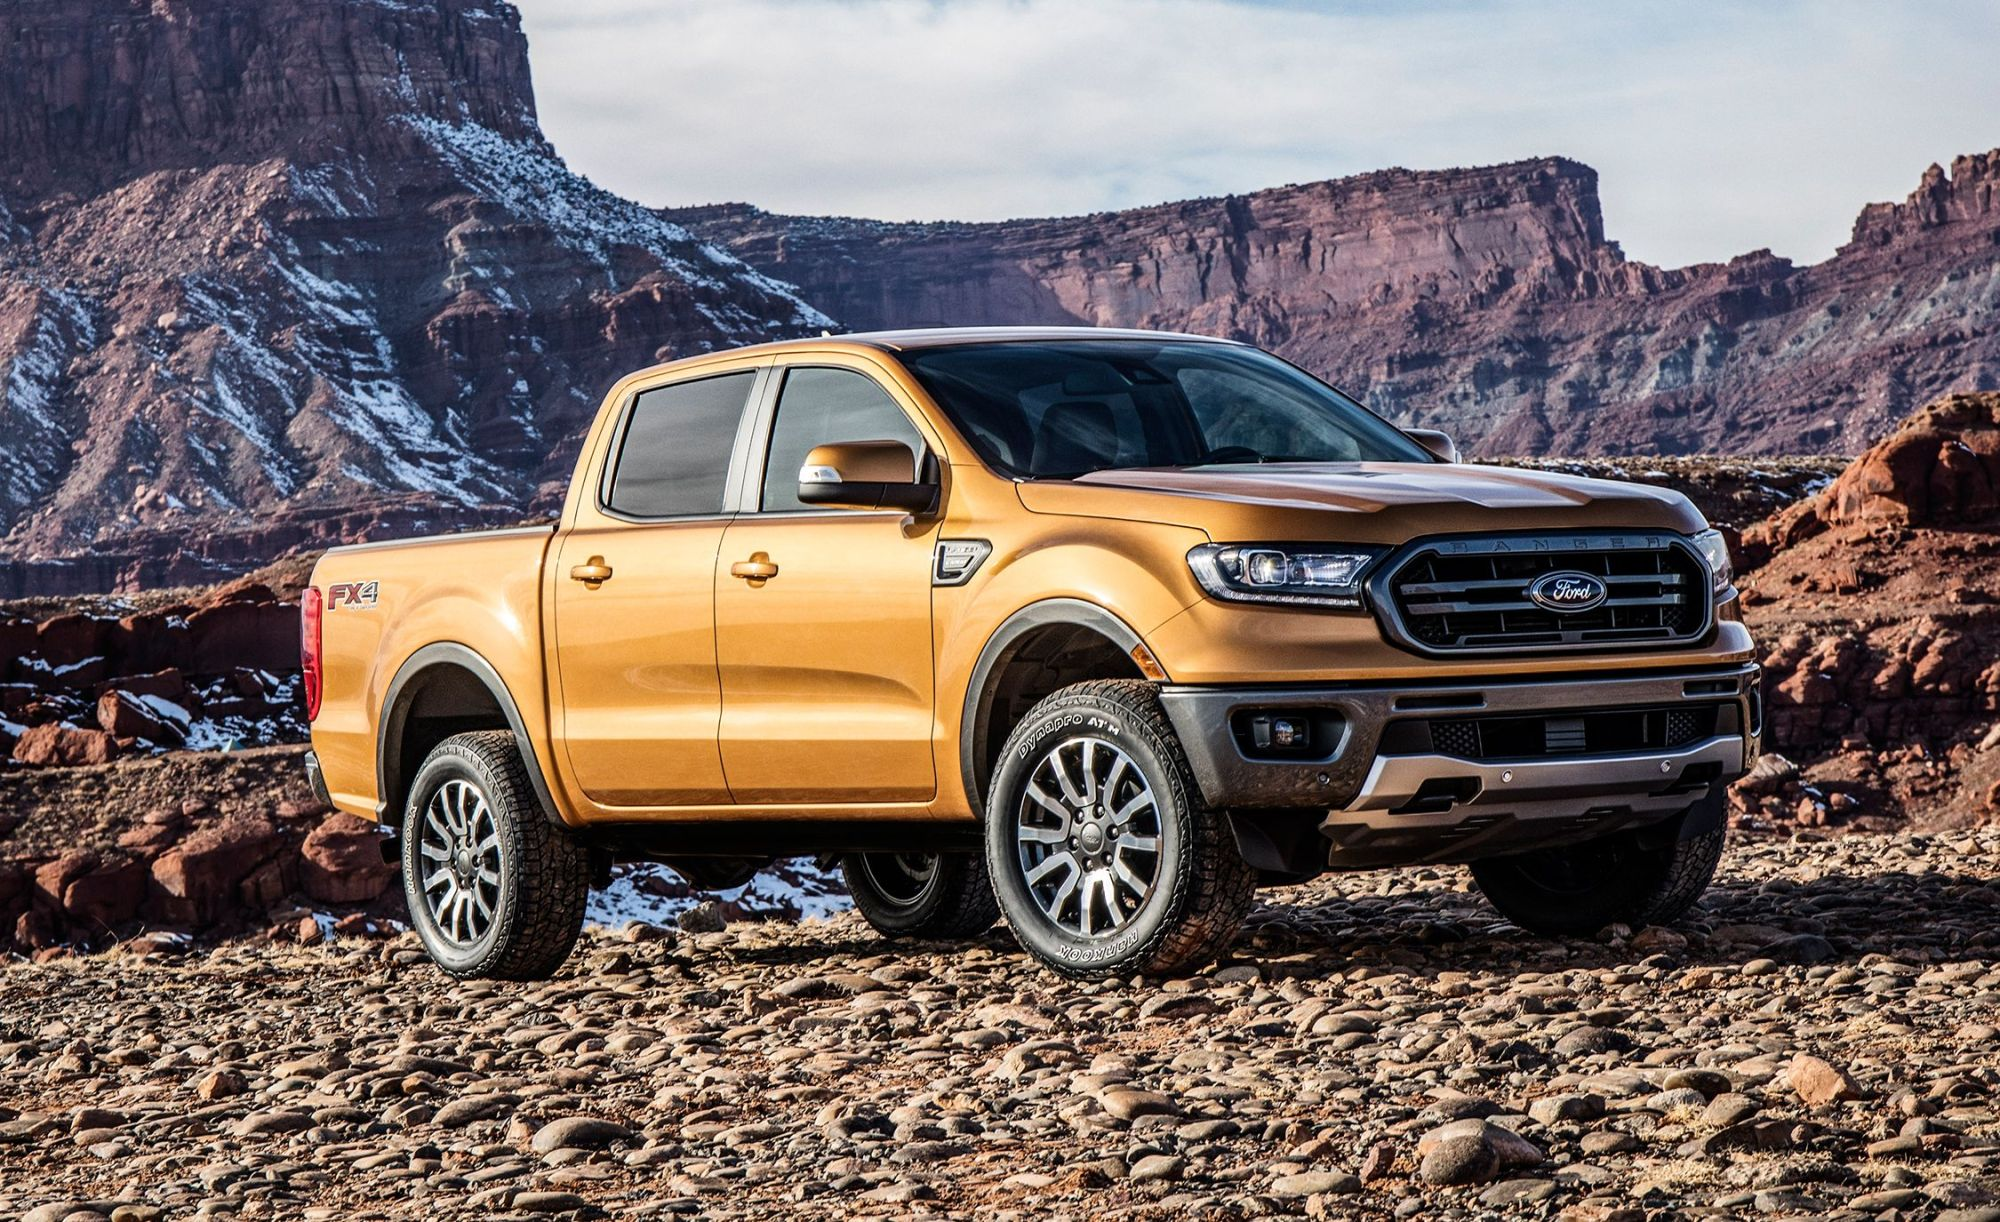 hight resolution of 34 off road ready trucks suvs and crossovers in 2019 4wd rigs with actual capability